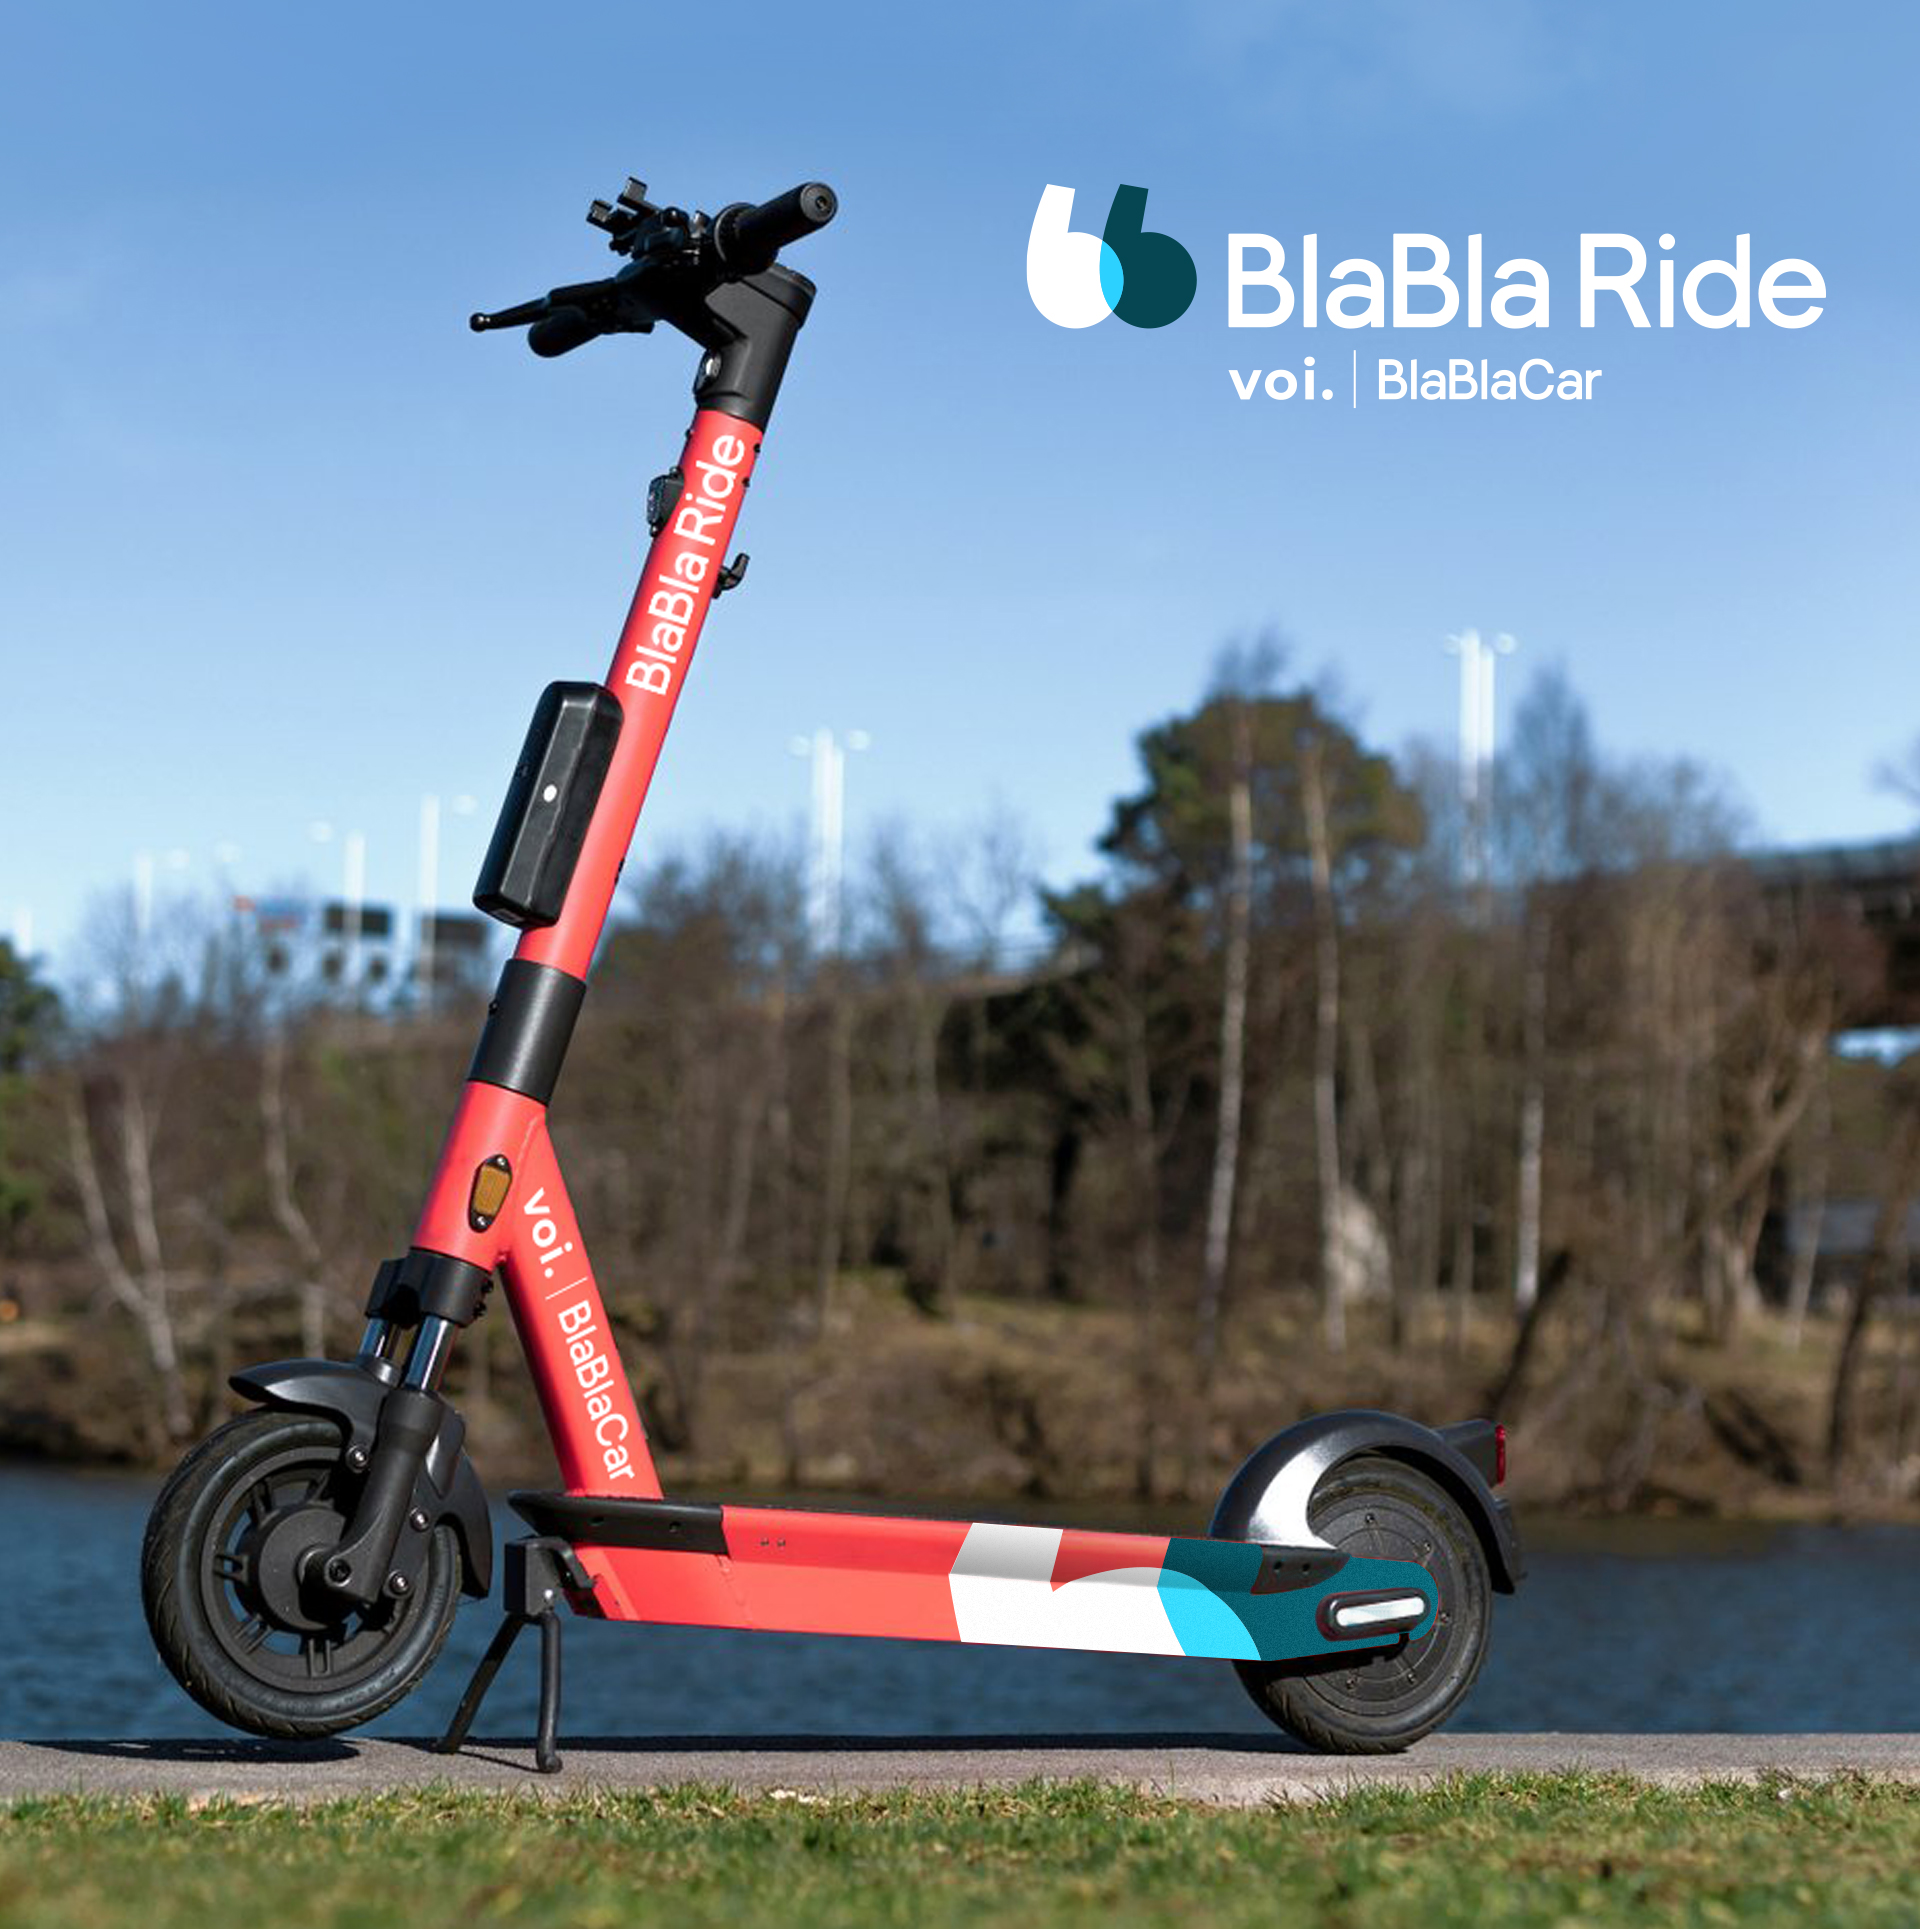 BlaBlaCar & Voi Technology join forces to offer BlaBla Ride scooters in France